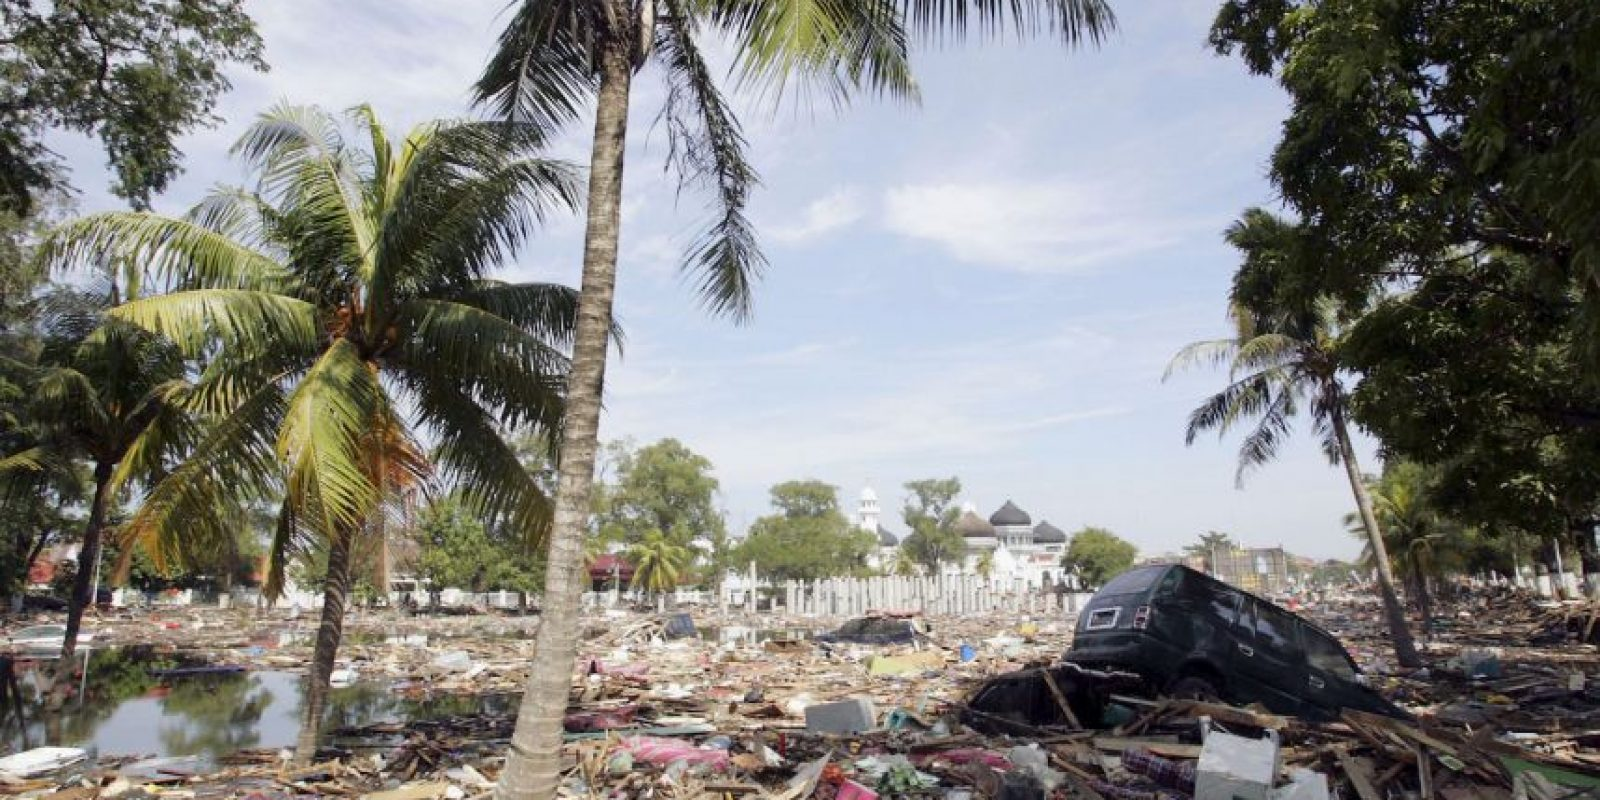 Sucedió en Indonesia, en la isla de Sumatra Foto: Getty Images